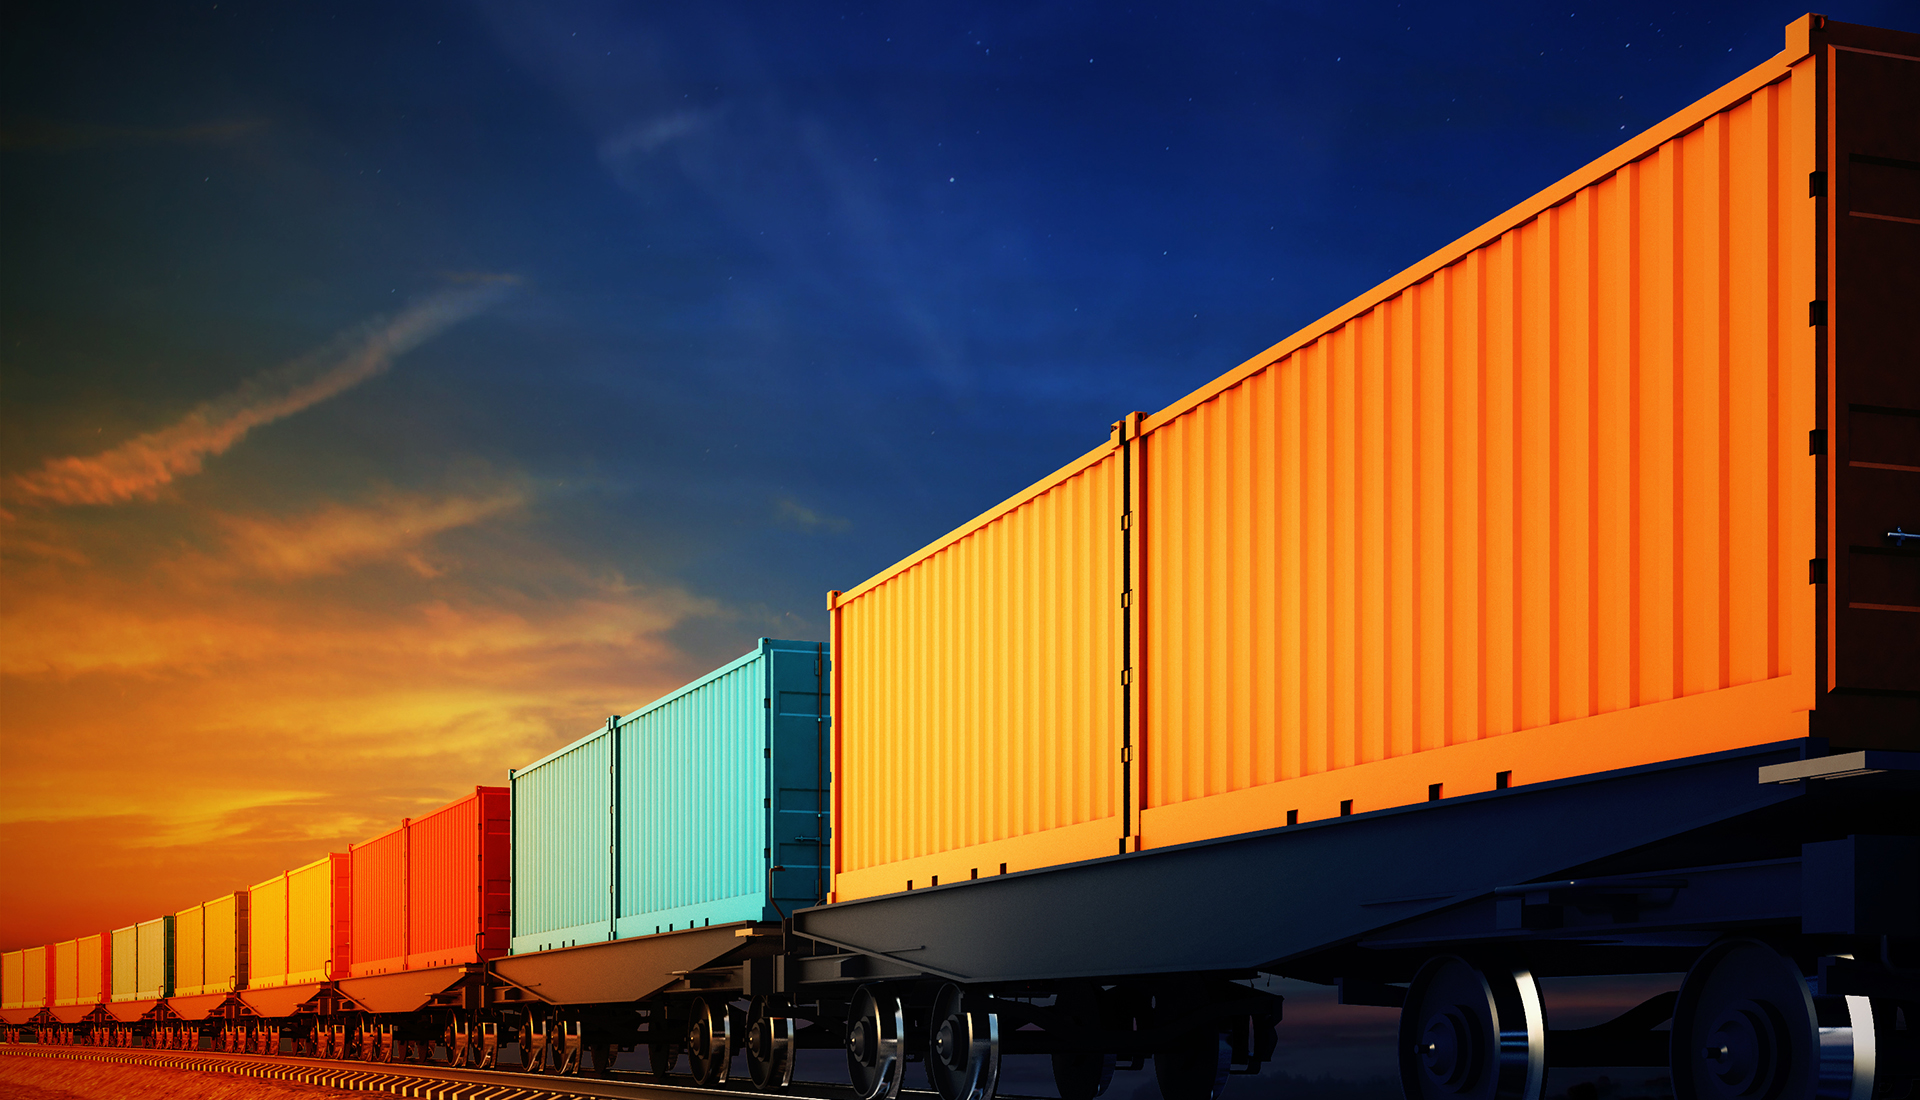 Enhancing Freight<br/>Security &#038; Efficiency